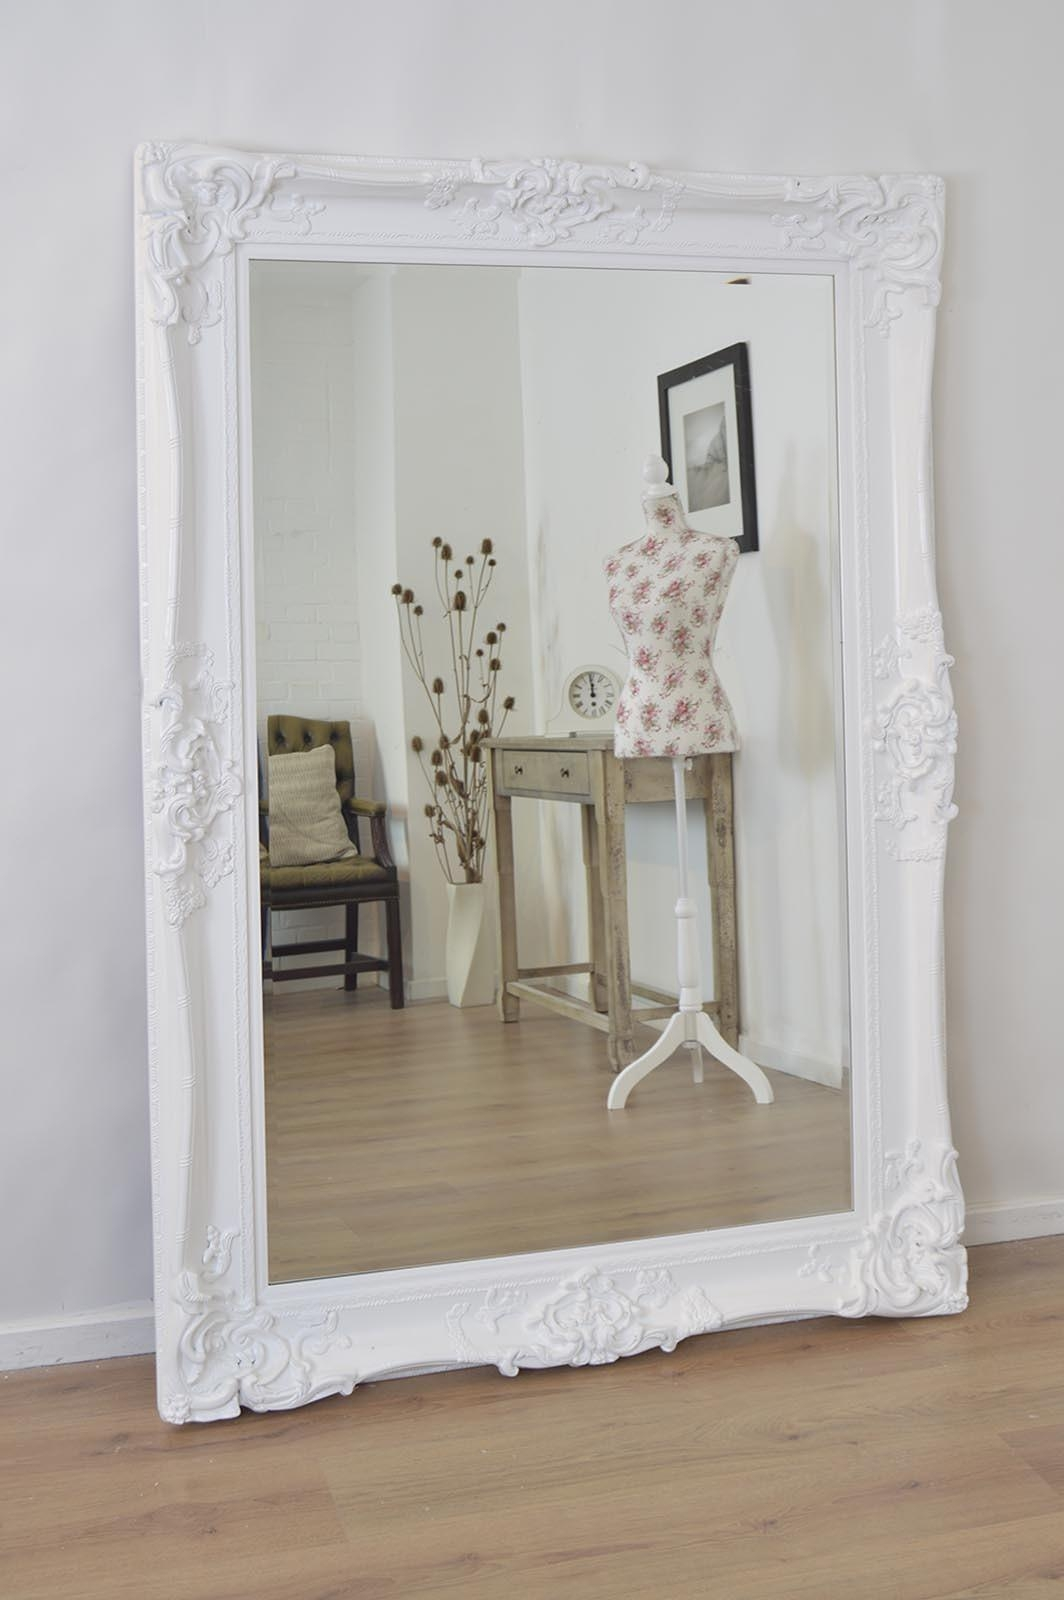 White Distressed Shabby Chic Mirror | Best Home Magazine Gallery With Regard To Shabby Chic Mirror White (Image 20 of 20)